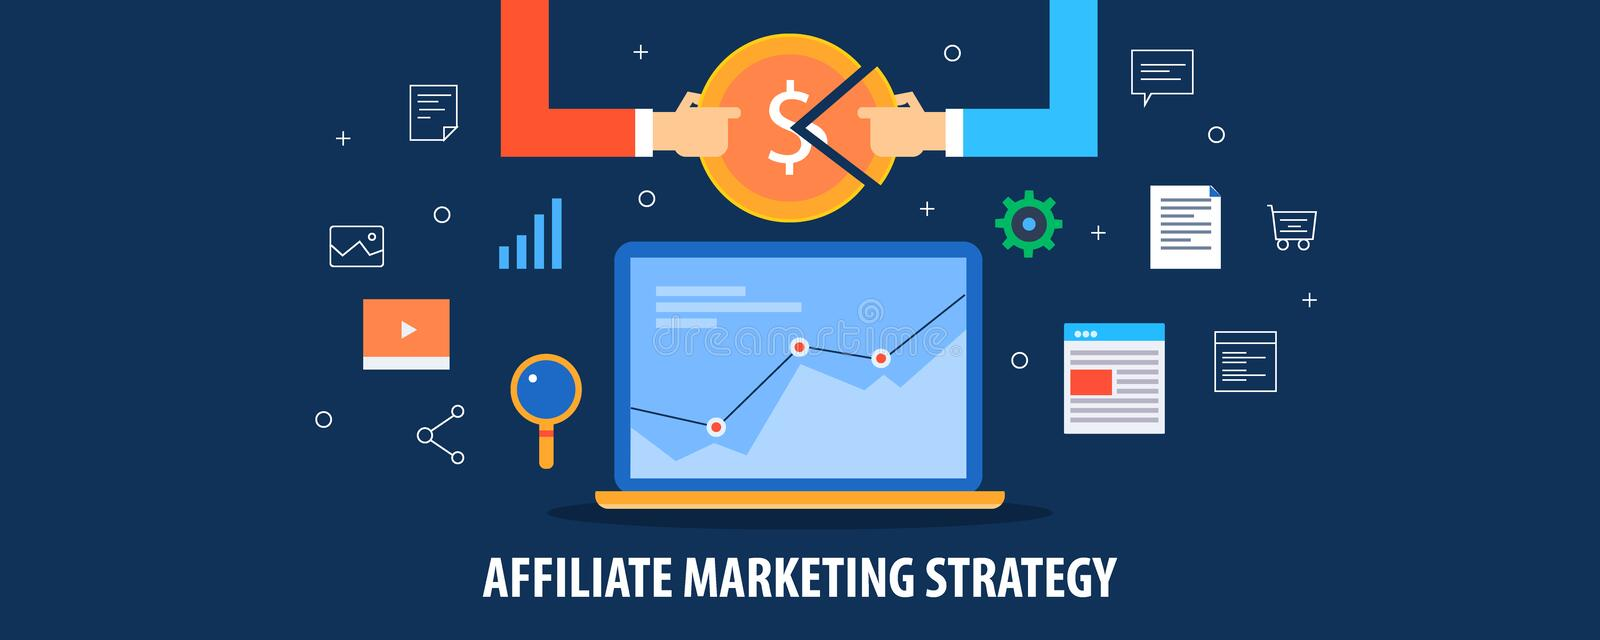 Affiliate marketing strategy, business partnership, profit sharing, increase sales concept. Flat design vector banner. royalty free illustration